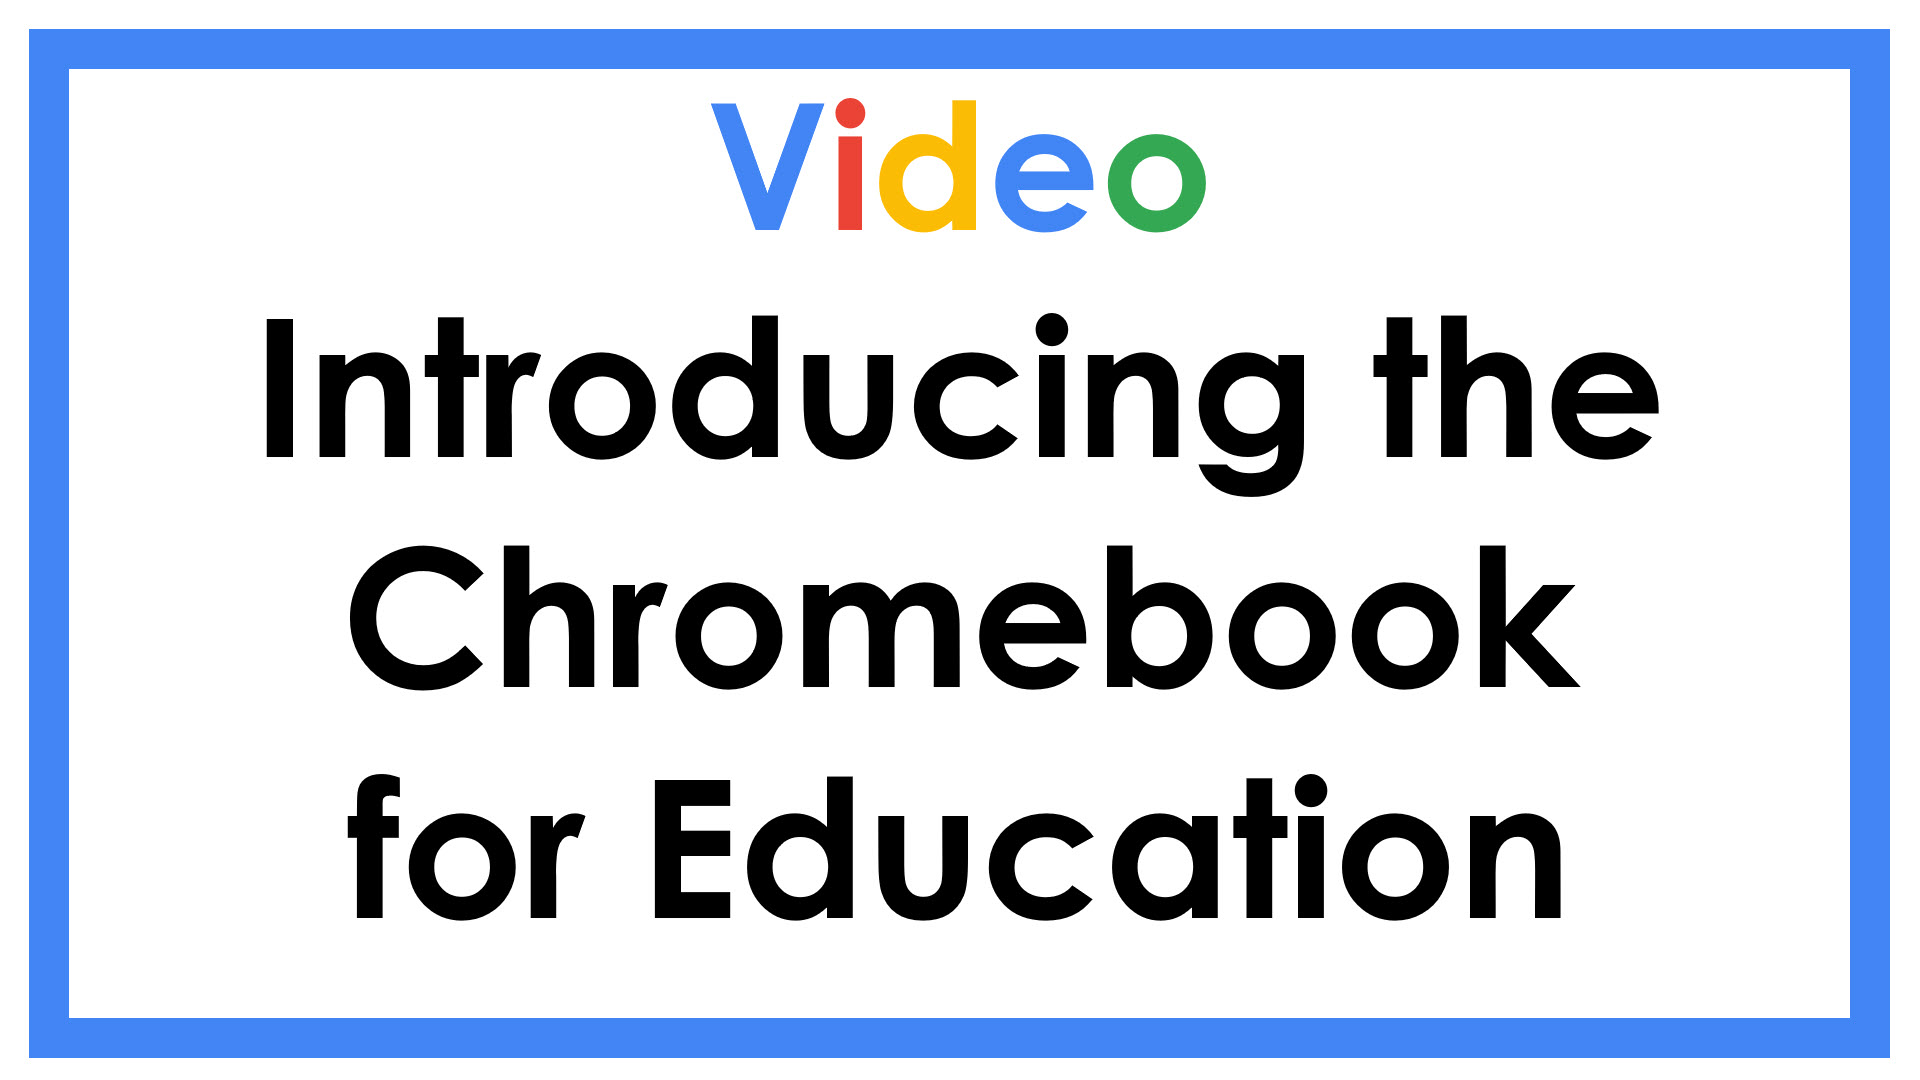 Video Introducing the Chromebook for Education